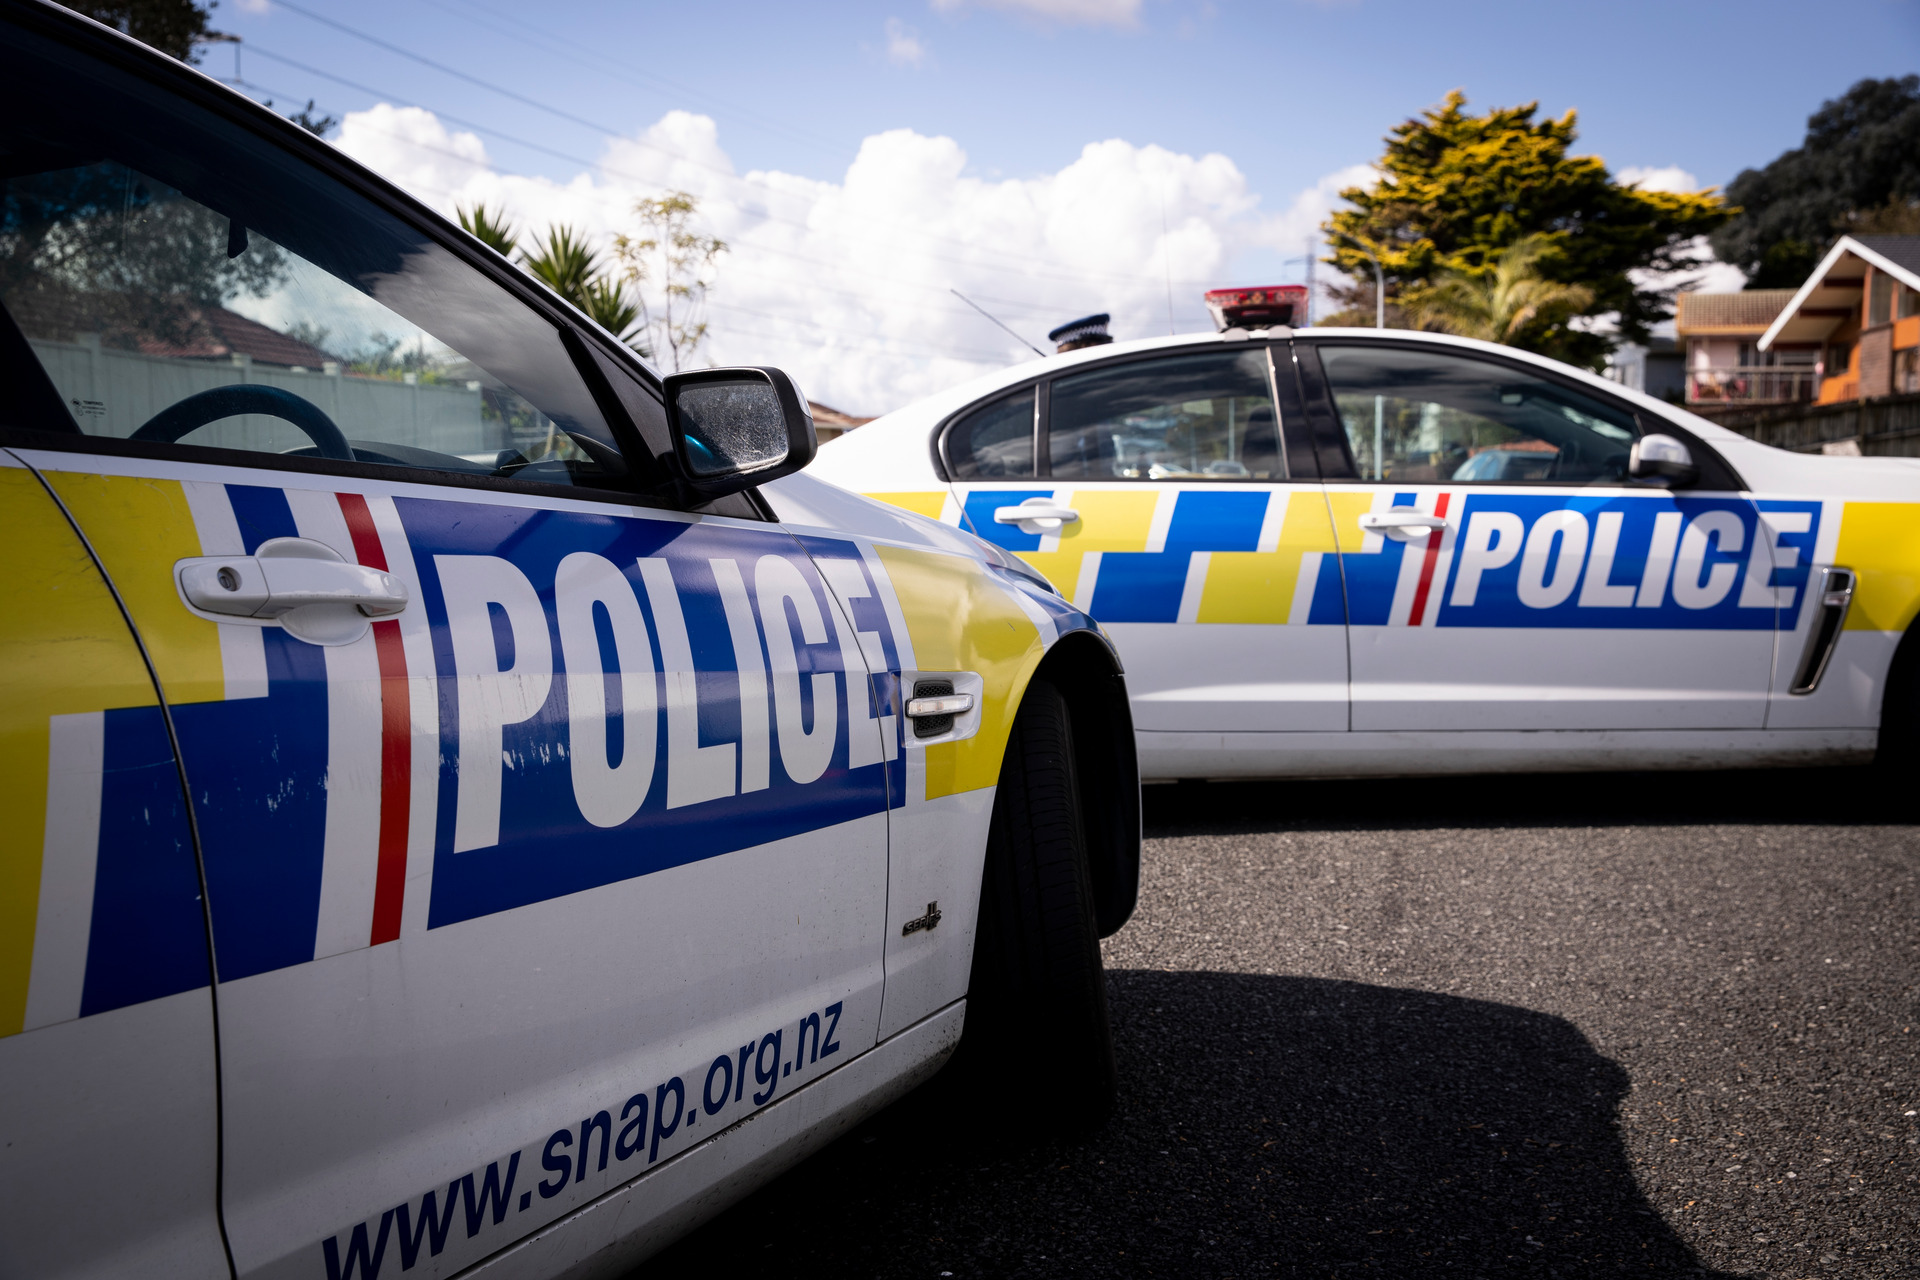 Man arrested in operation involving armed police in Waiau Pa near Auckland